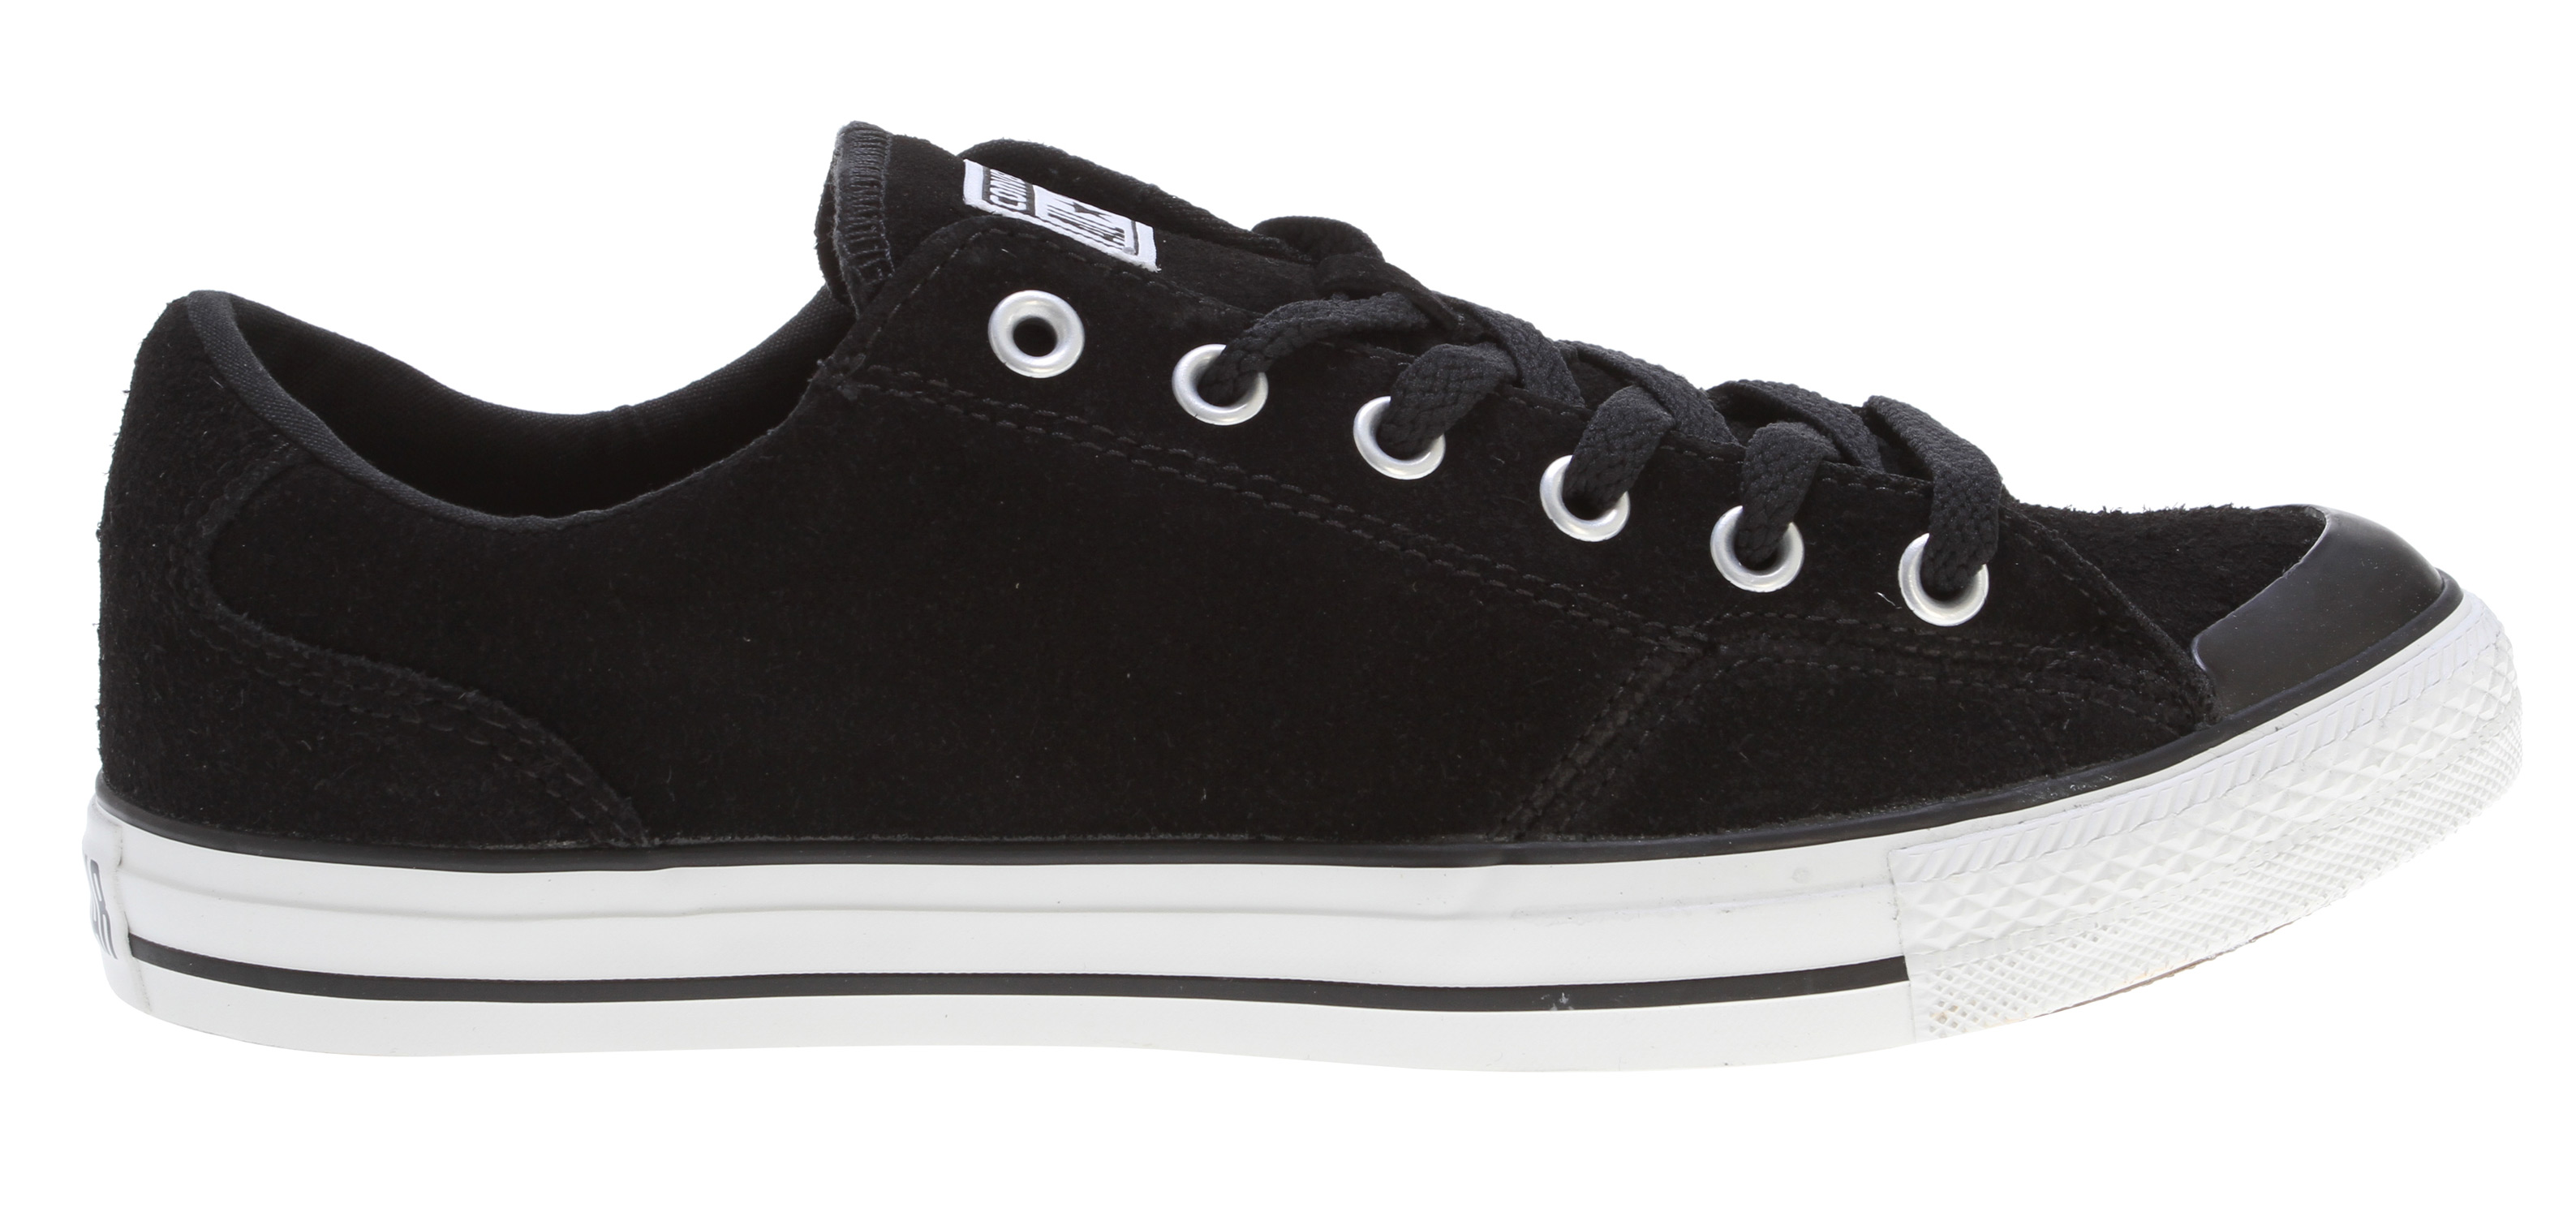 Skateboard The Converse CT LS Skate Shoe exemplifies the relentlessly simple style, comfort, and skate functionality that Cons is known for. A small rubberized toe rand, a vulcanized rubber sole, and a thin tongue make the CT LS a good low-bulk shoe for skating or just wearing around. - $41.95